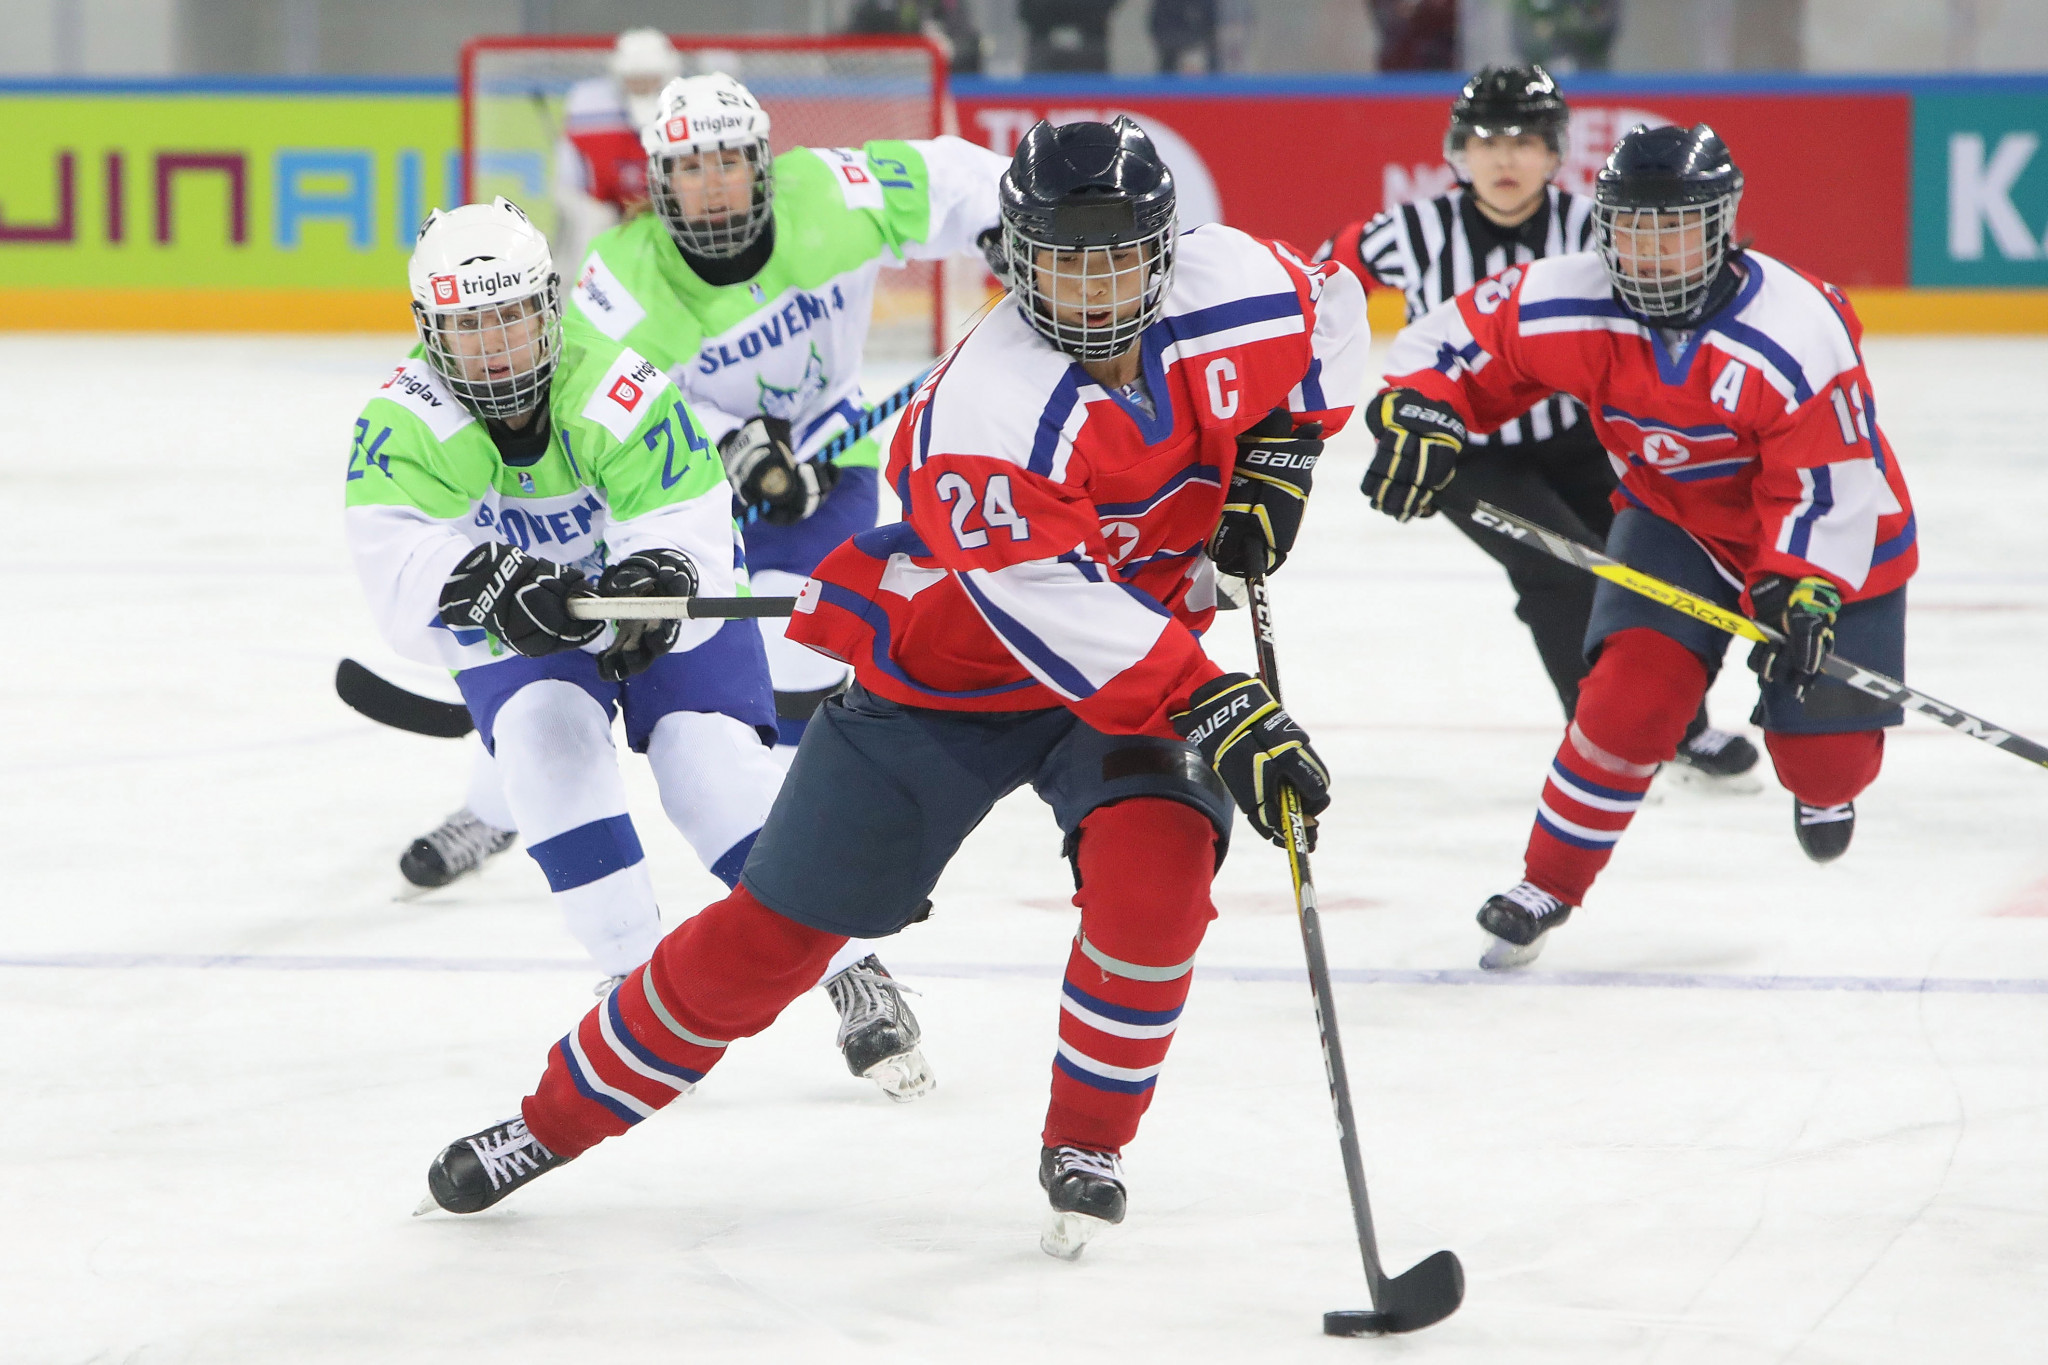 North Korea pictured at last year's divisional World Championships in Gangneung in South Korea ©Getty Images